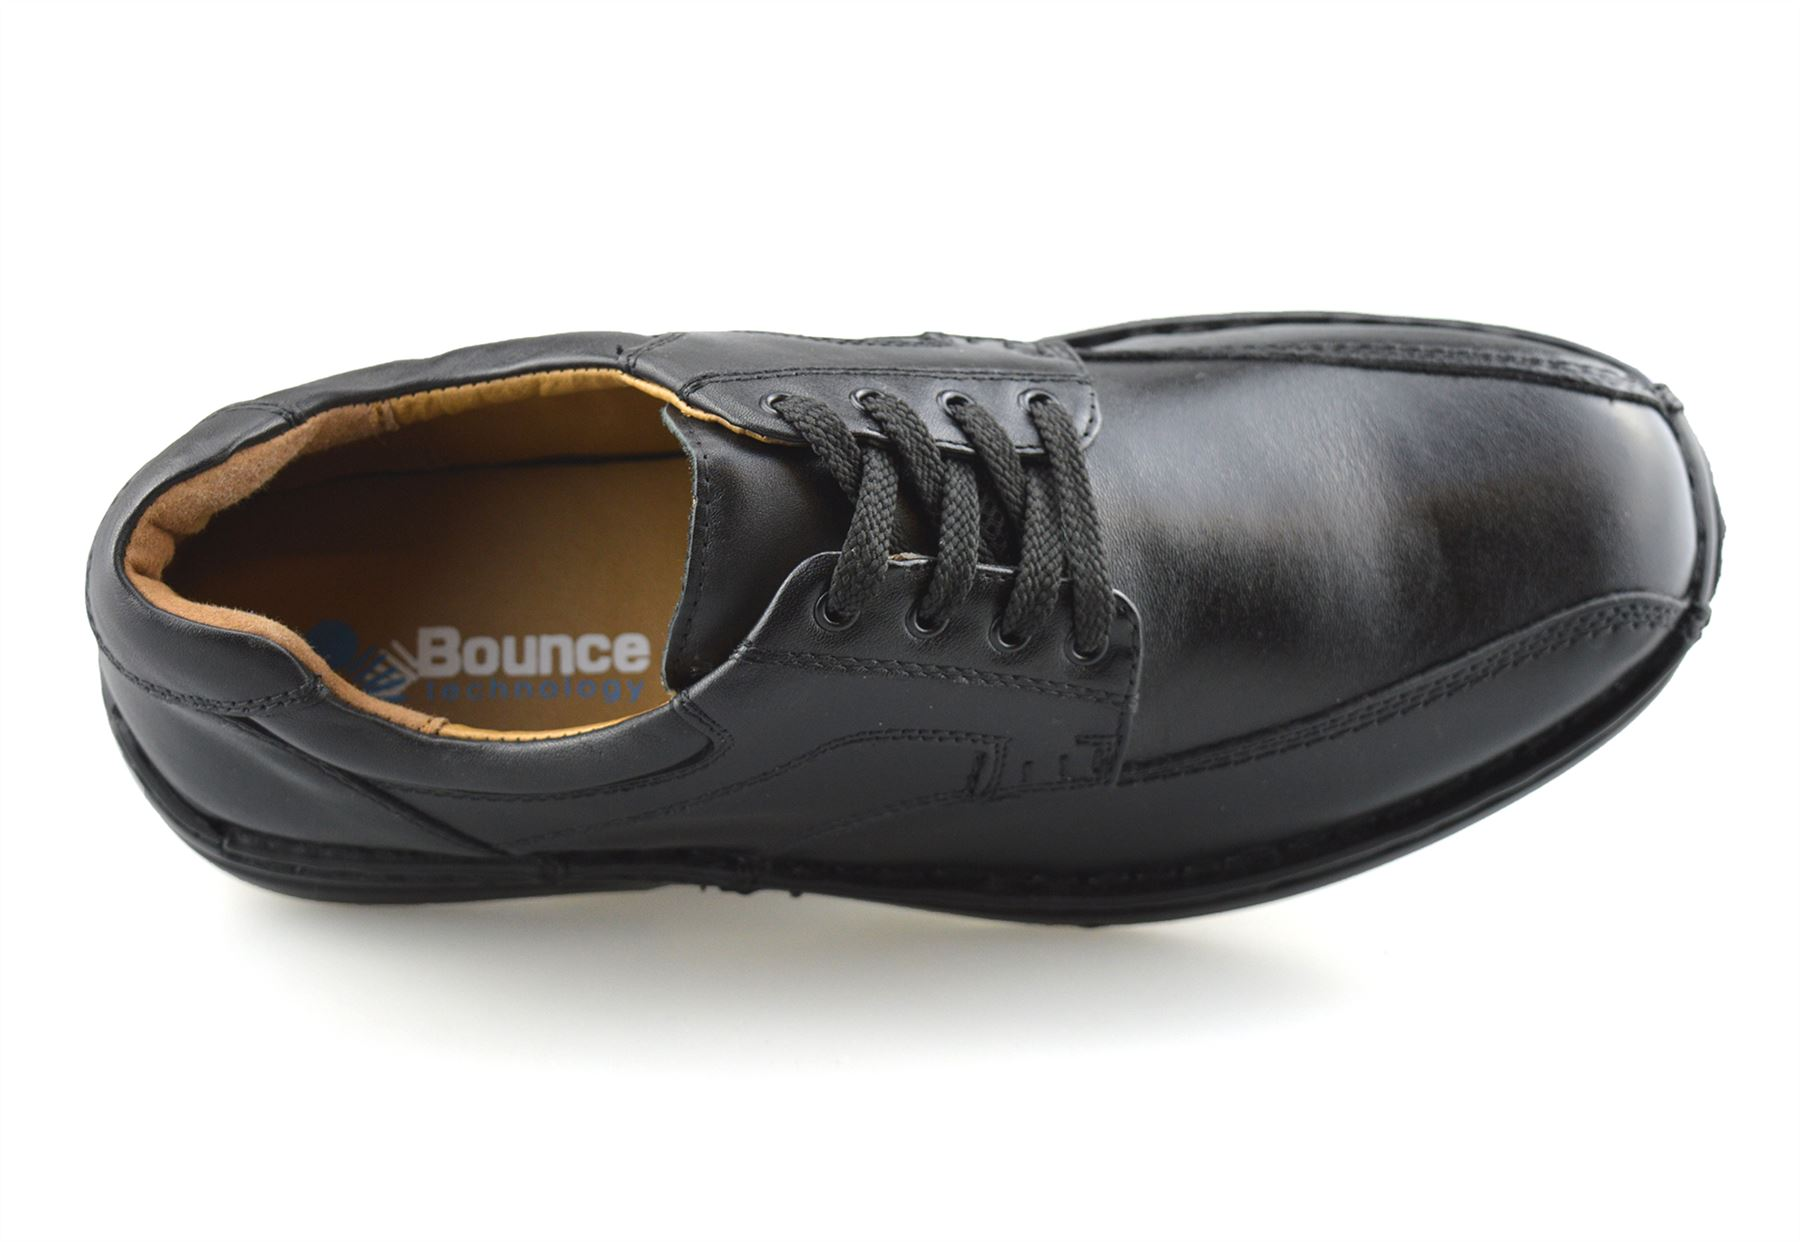 Mens-Hush-Puppies-Leather-Wide-Fit-Smart-Casual-Lace-Up-Work-Office-Shoes-Size thumbnail 12